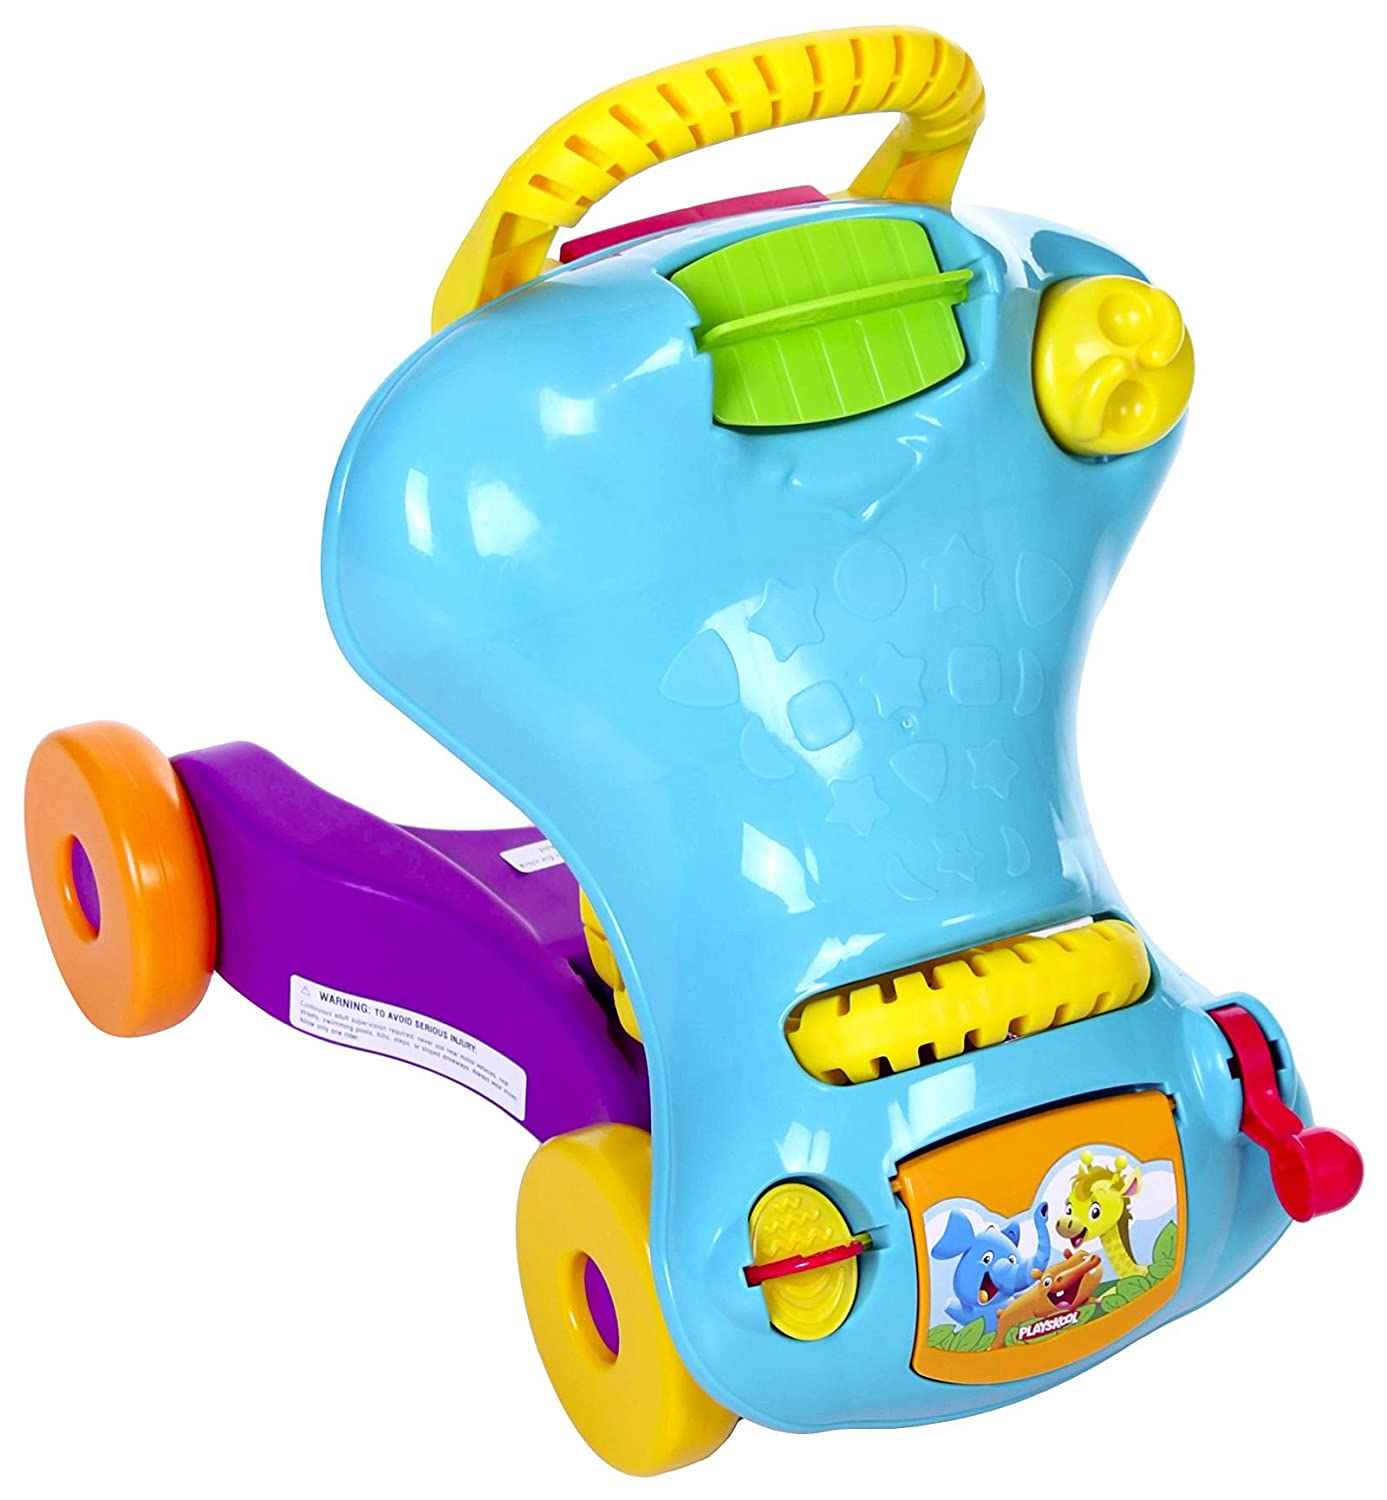 Playskool Paso Start Walk n Ride: Amazon.es: Juguetes y juegos